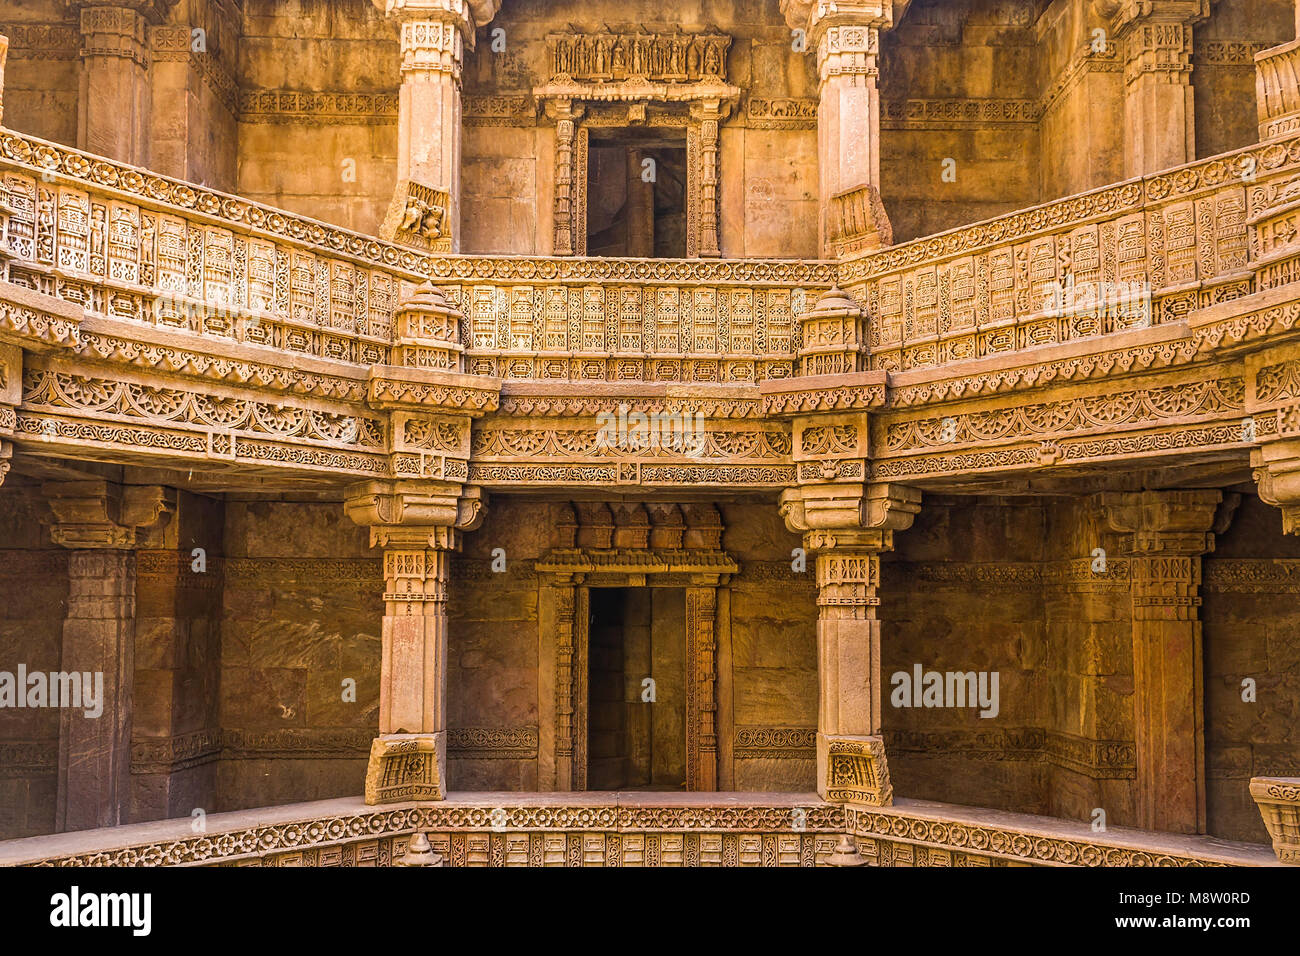 Step Well of Adalaj, Gujarat, India. - Stock Image